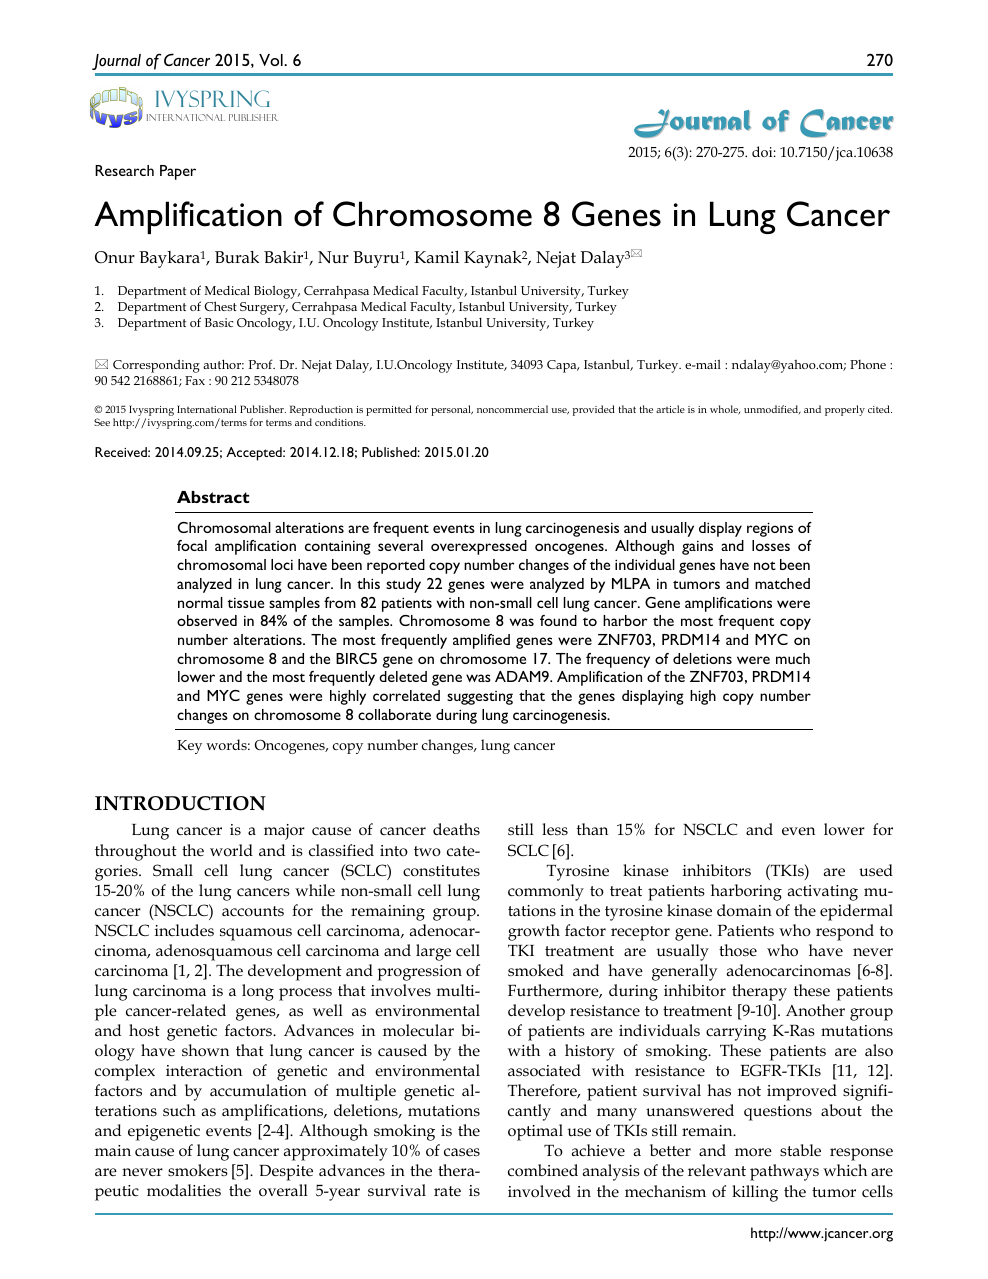 Amplification of Chromosome 8 Genes in Lung Cancer – topic of